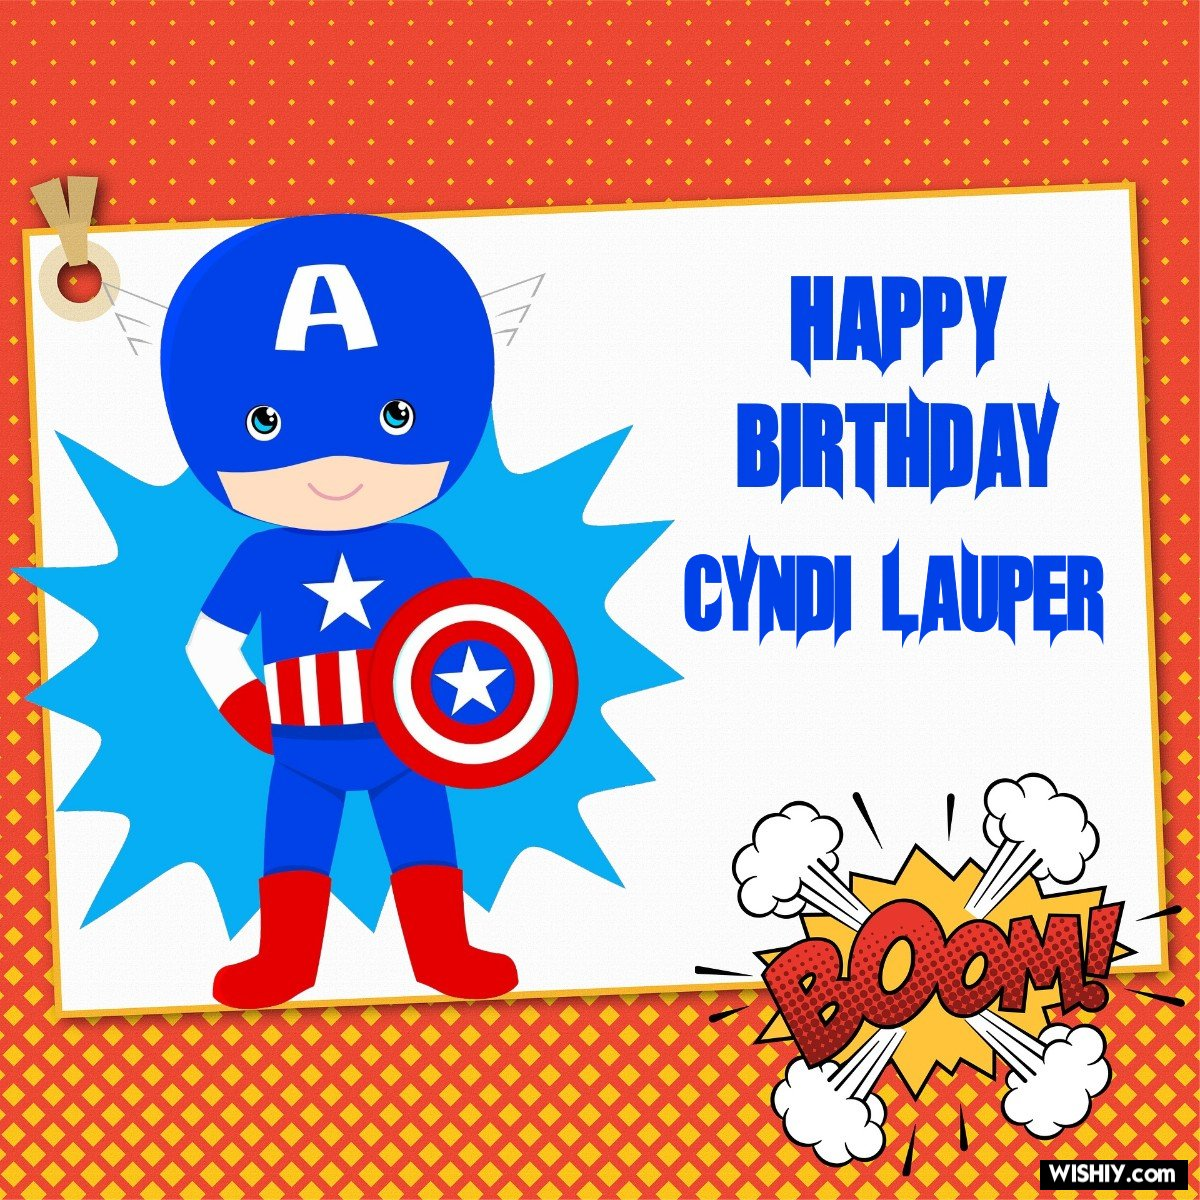 50 Best Birthday Images For Cyndi Lauper Instant Download 2020